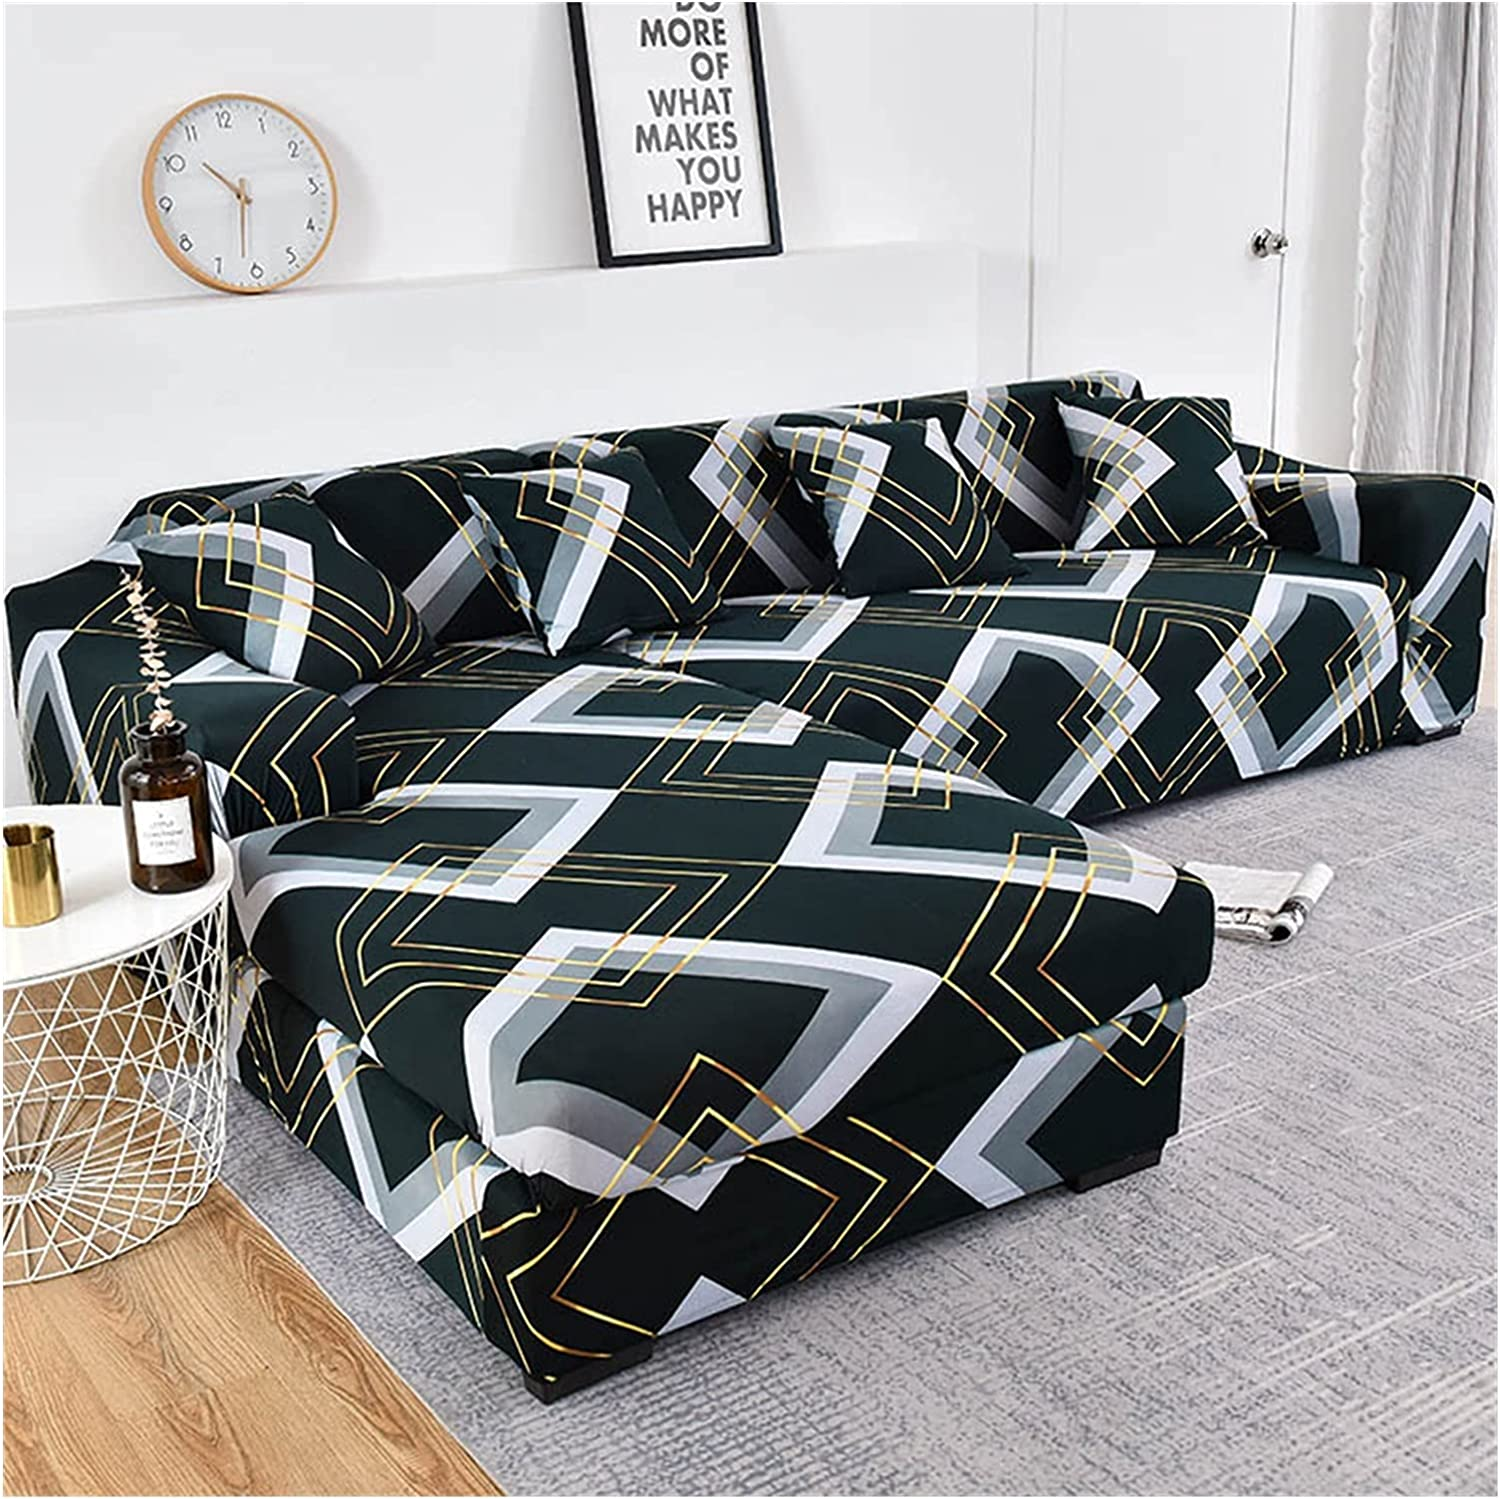 JDKJ Sofa Cover Geometric Award-winning store Elastic 2021 autumn and winter new Couch Liv for